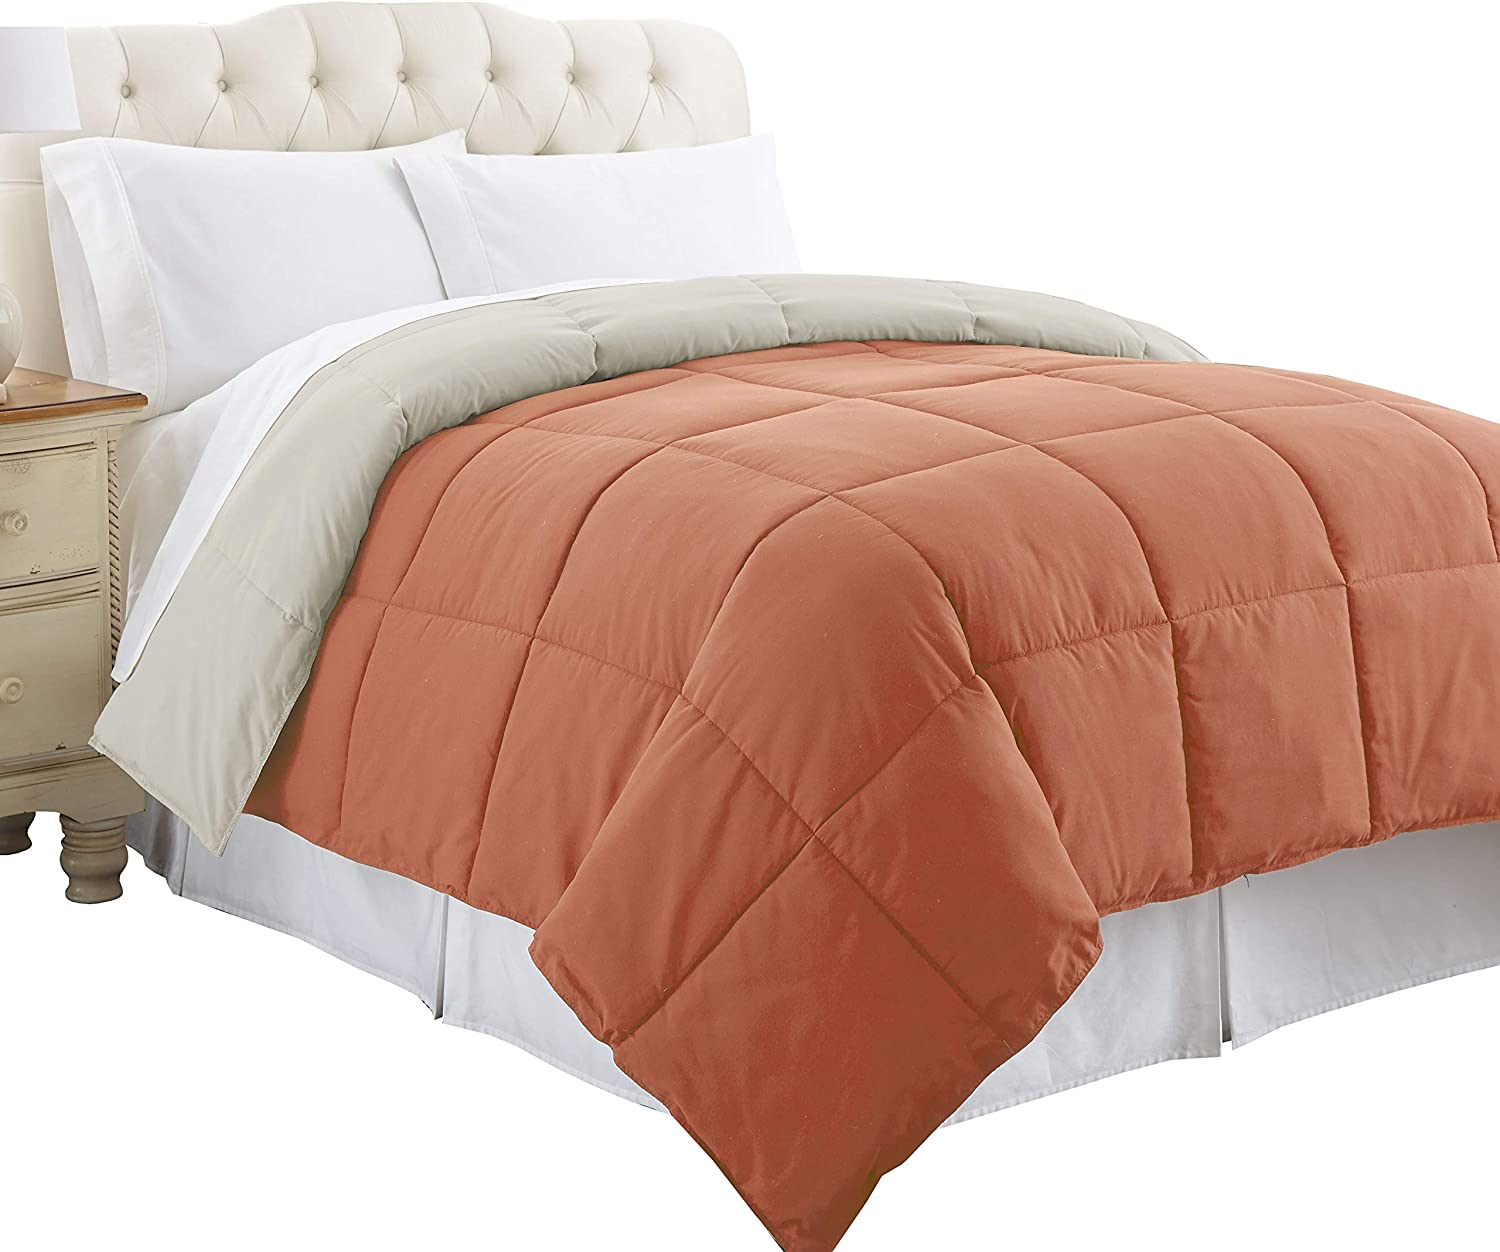 TUP THE URBAN PORT Genoa Queen Long Beach Mall Quilted Box Size Excellence Comfo Reversible